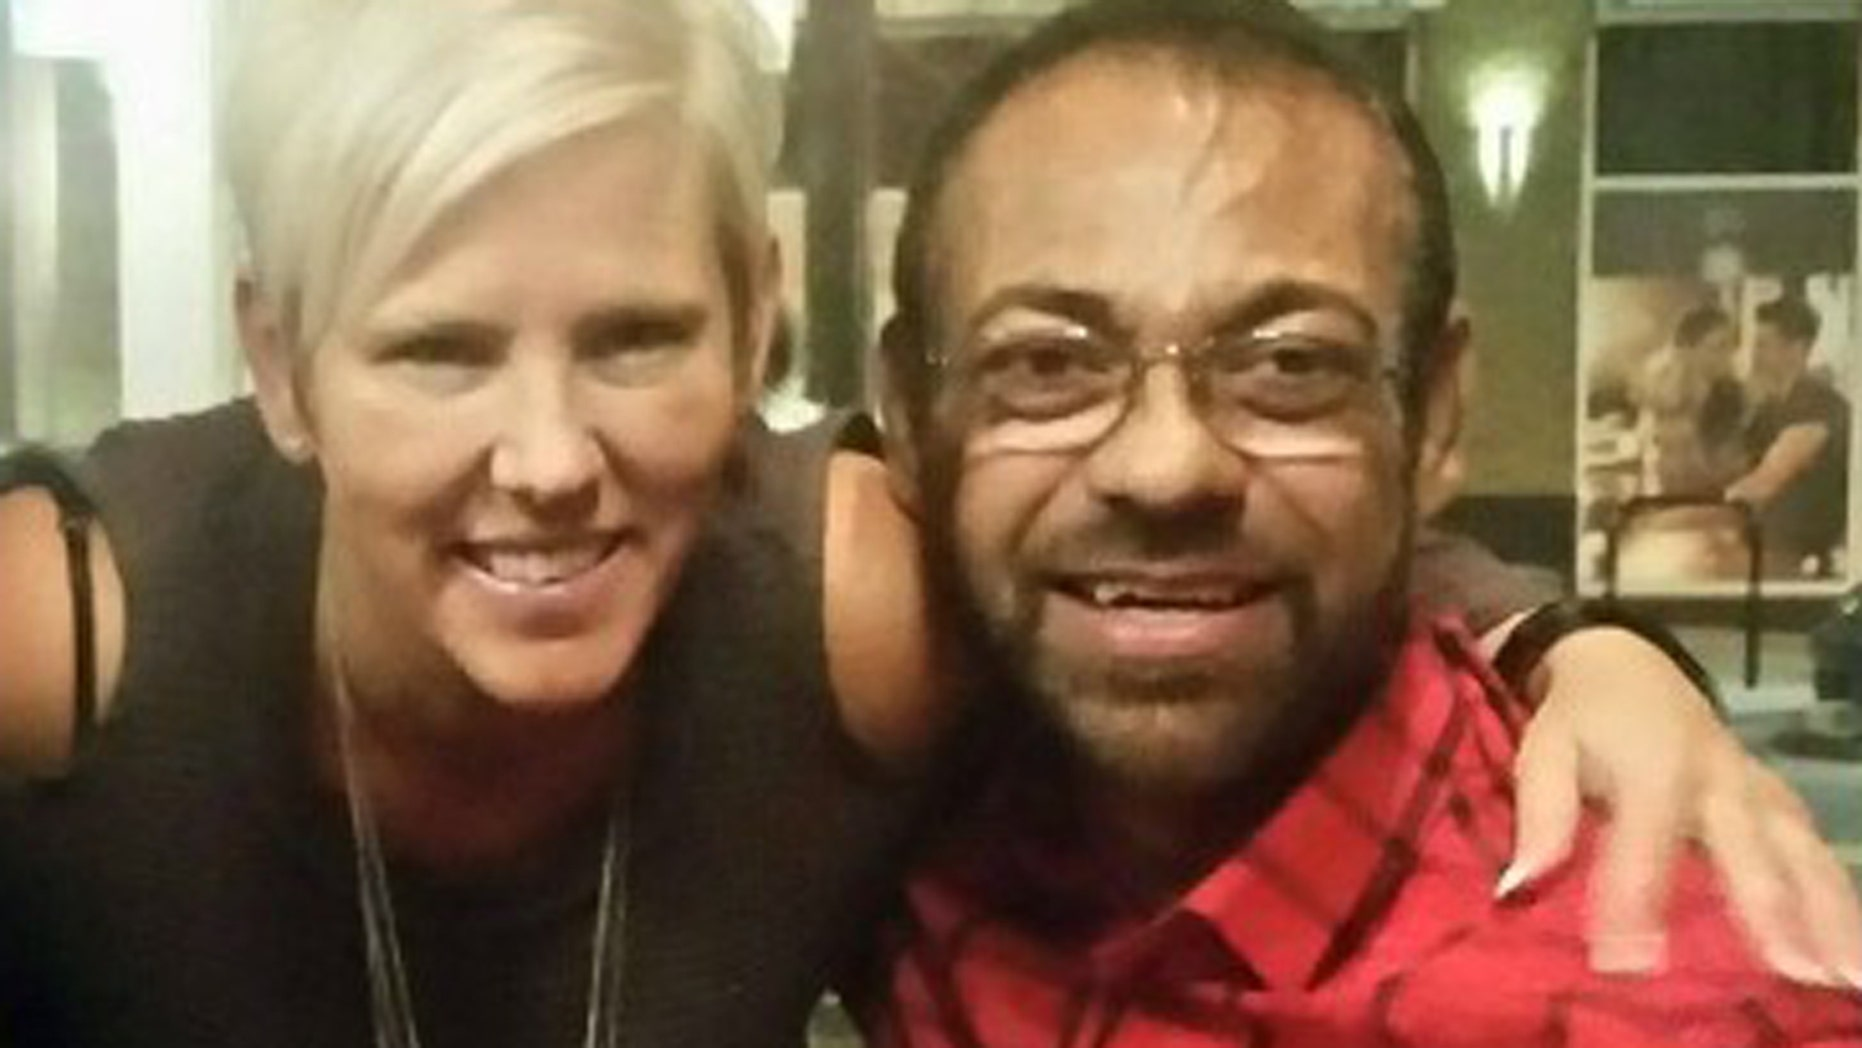 Kim Menders reached out to Oscar Serrano after reading his story on Facebook.